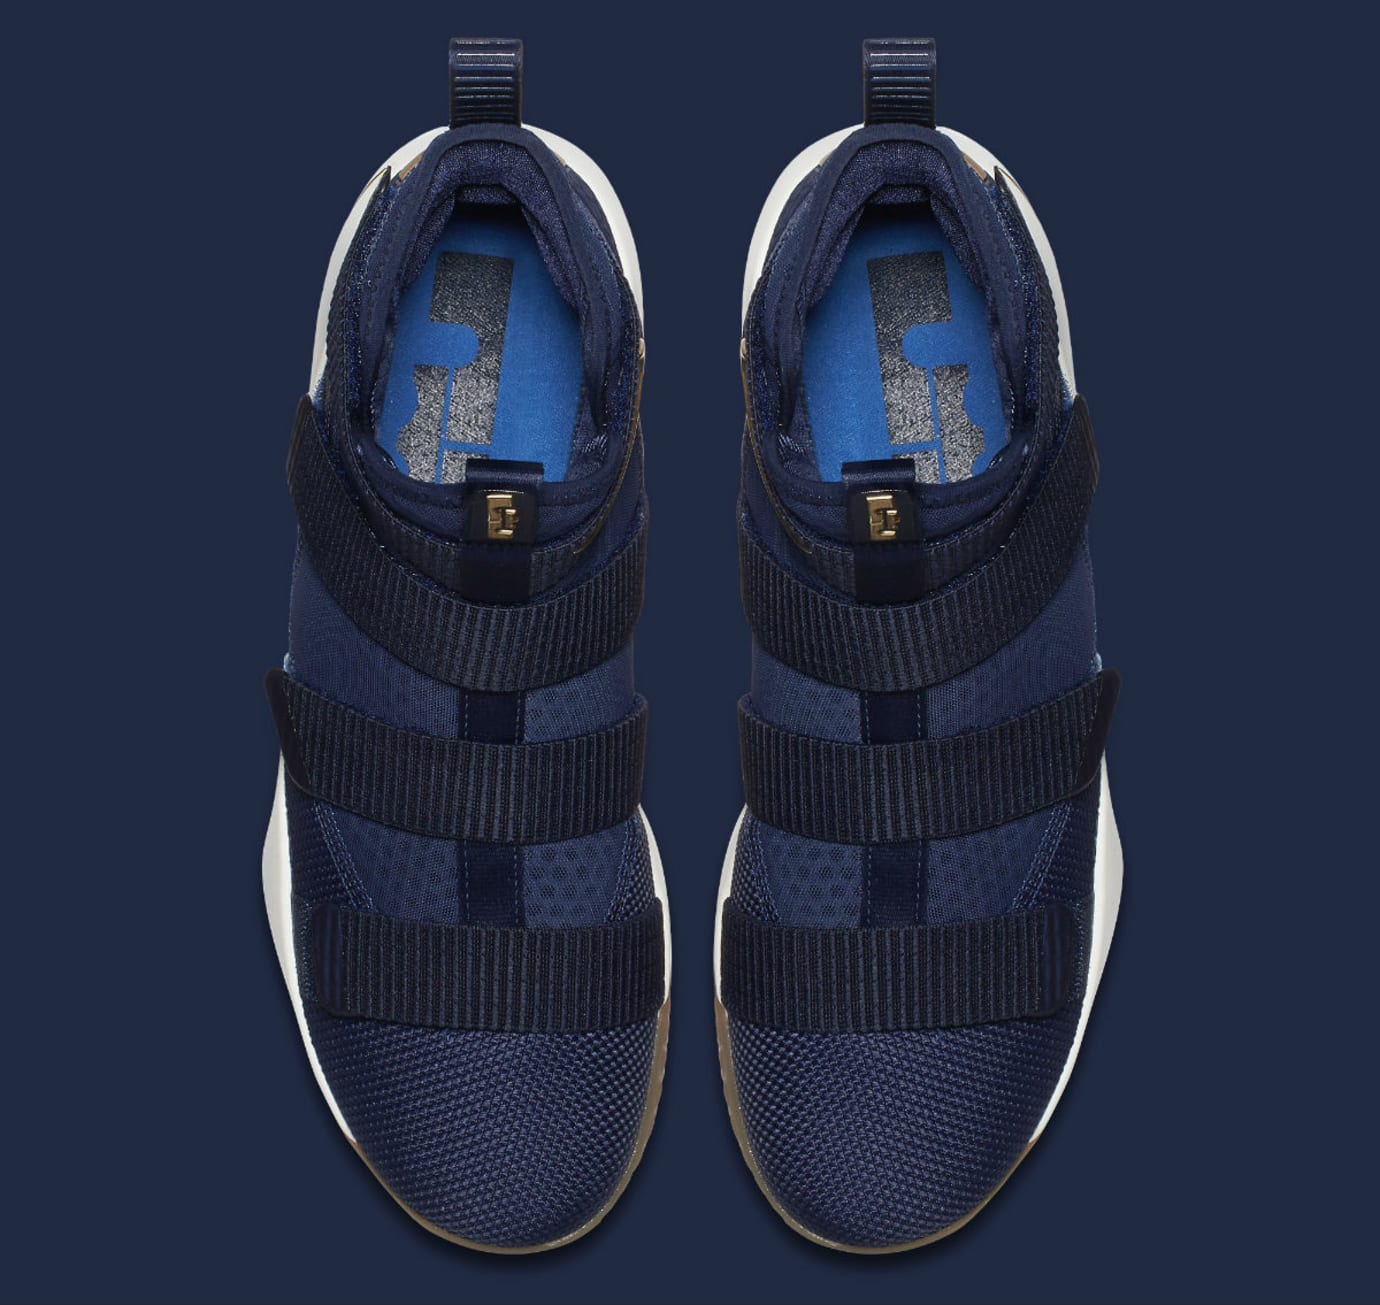 5673d0125c0 Nike LeBron Soldier 11 Cavs Navy Release Date Top 897644-402